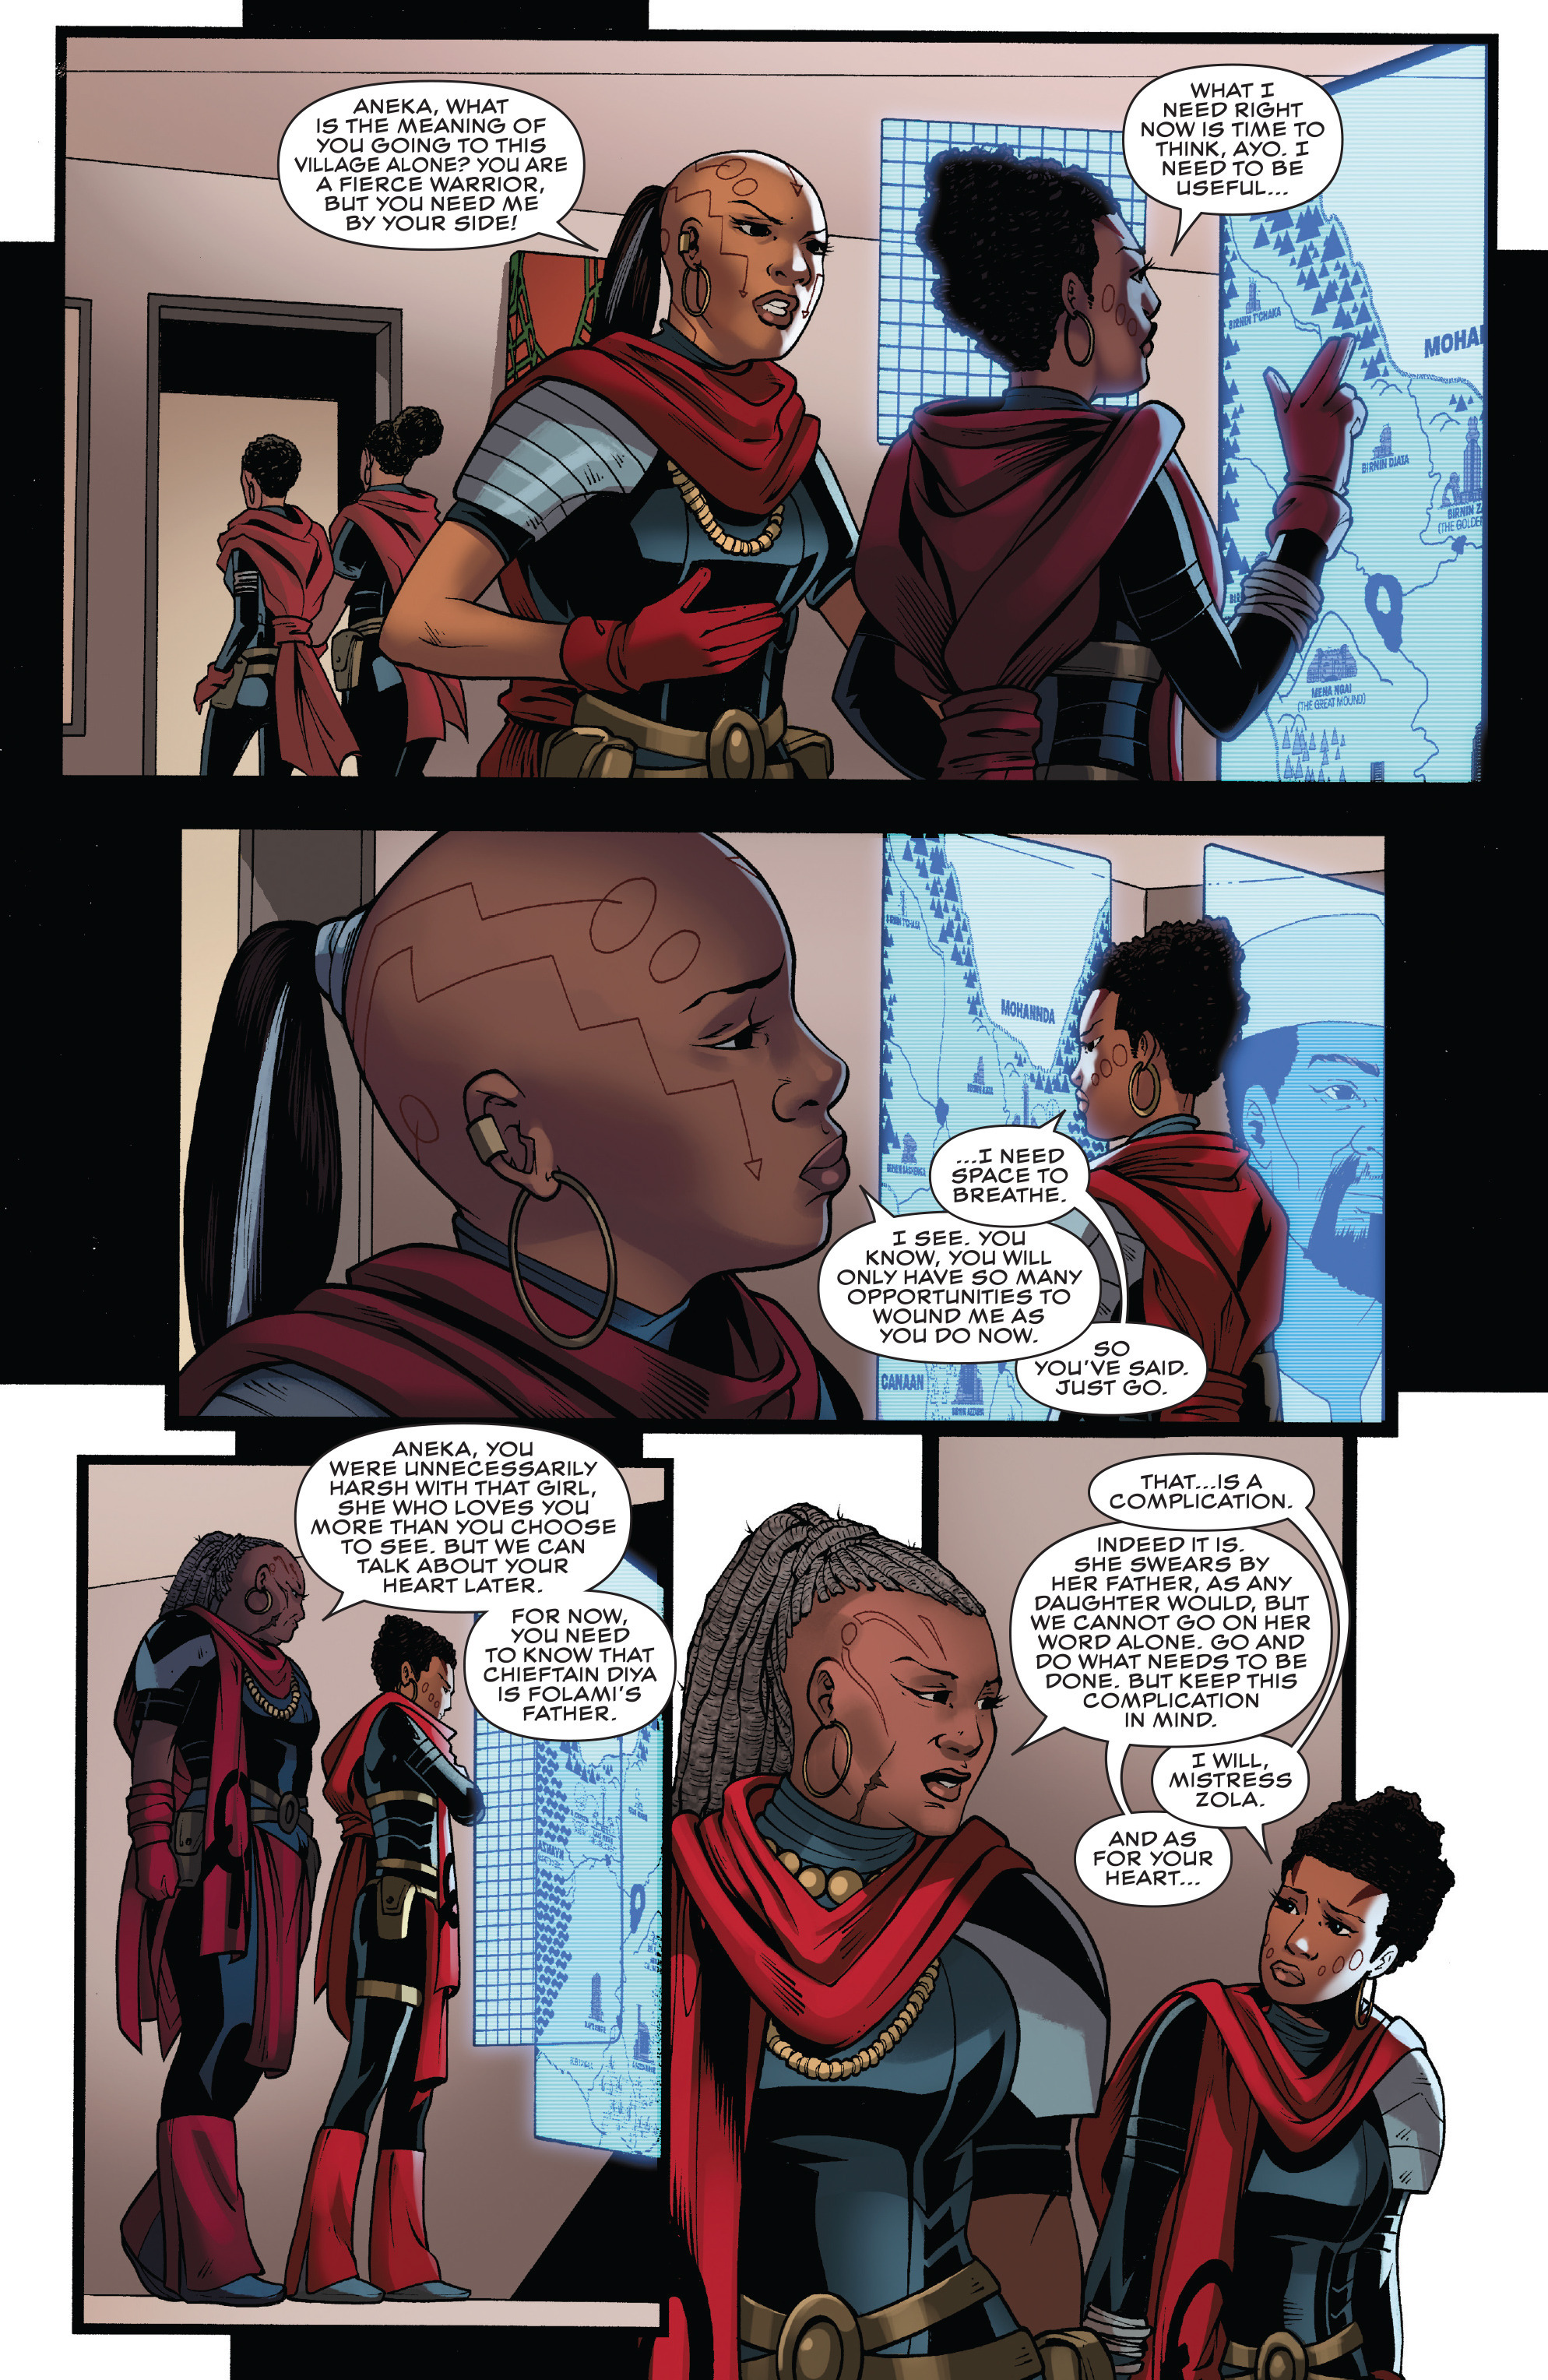 Read online Black Panther: World of Wakanda comic -  Issue #4 - 15